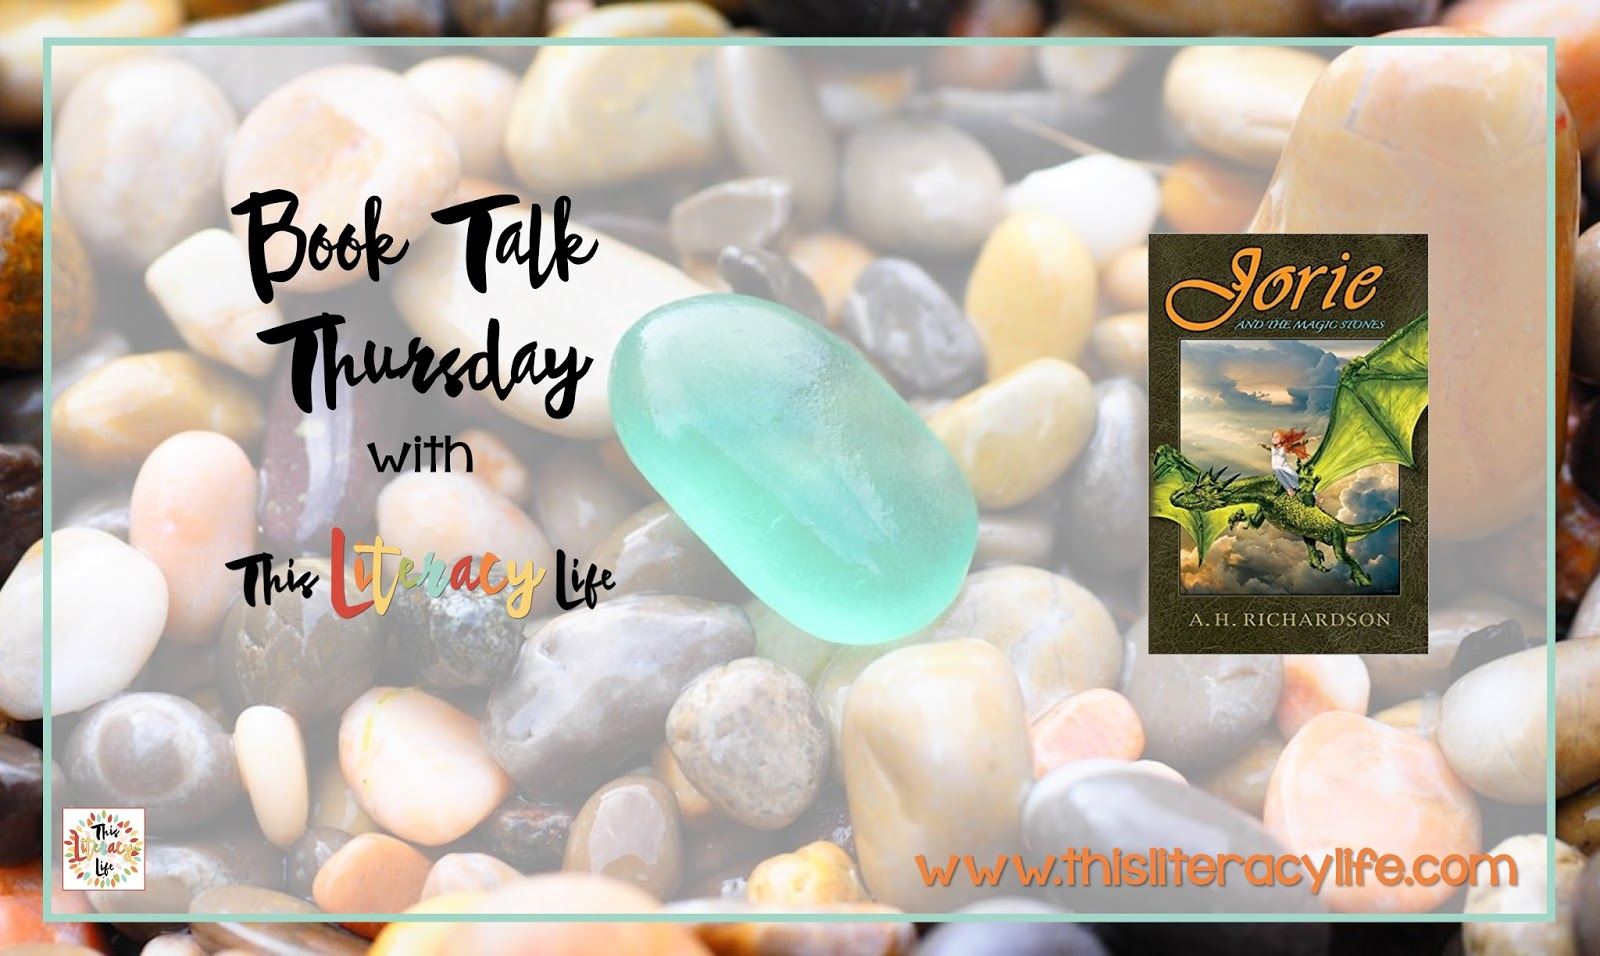 Jorie must find the magic stones for Cabrynthia,but what happens when she and Rufus go on the journey of their lifetimes?